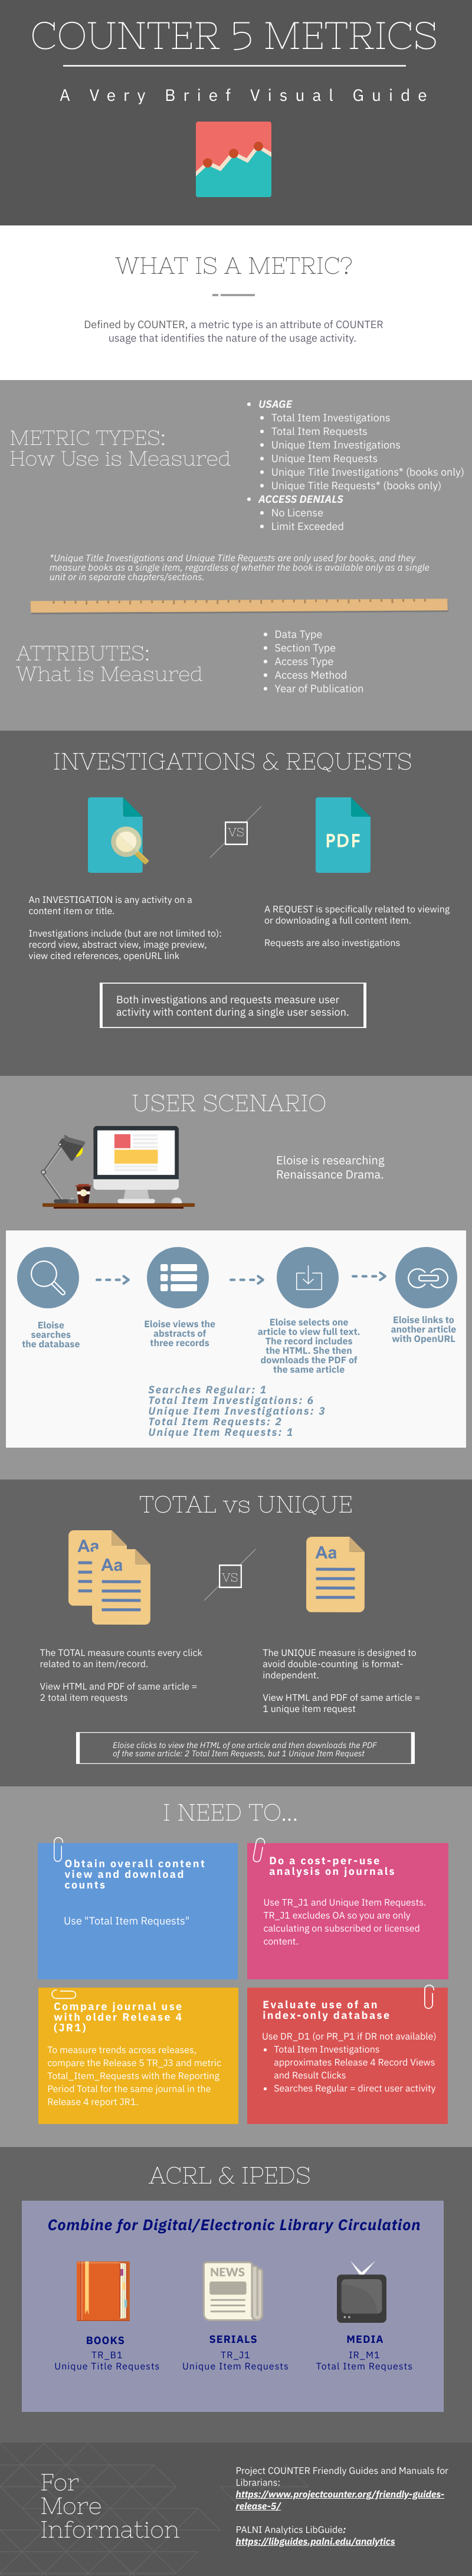 infographic with summary description of use of COUNTER 5 request and investigation metrics